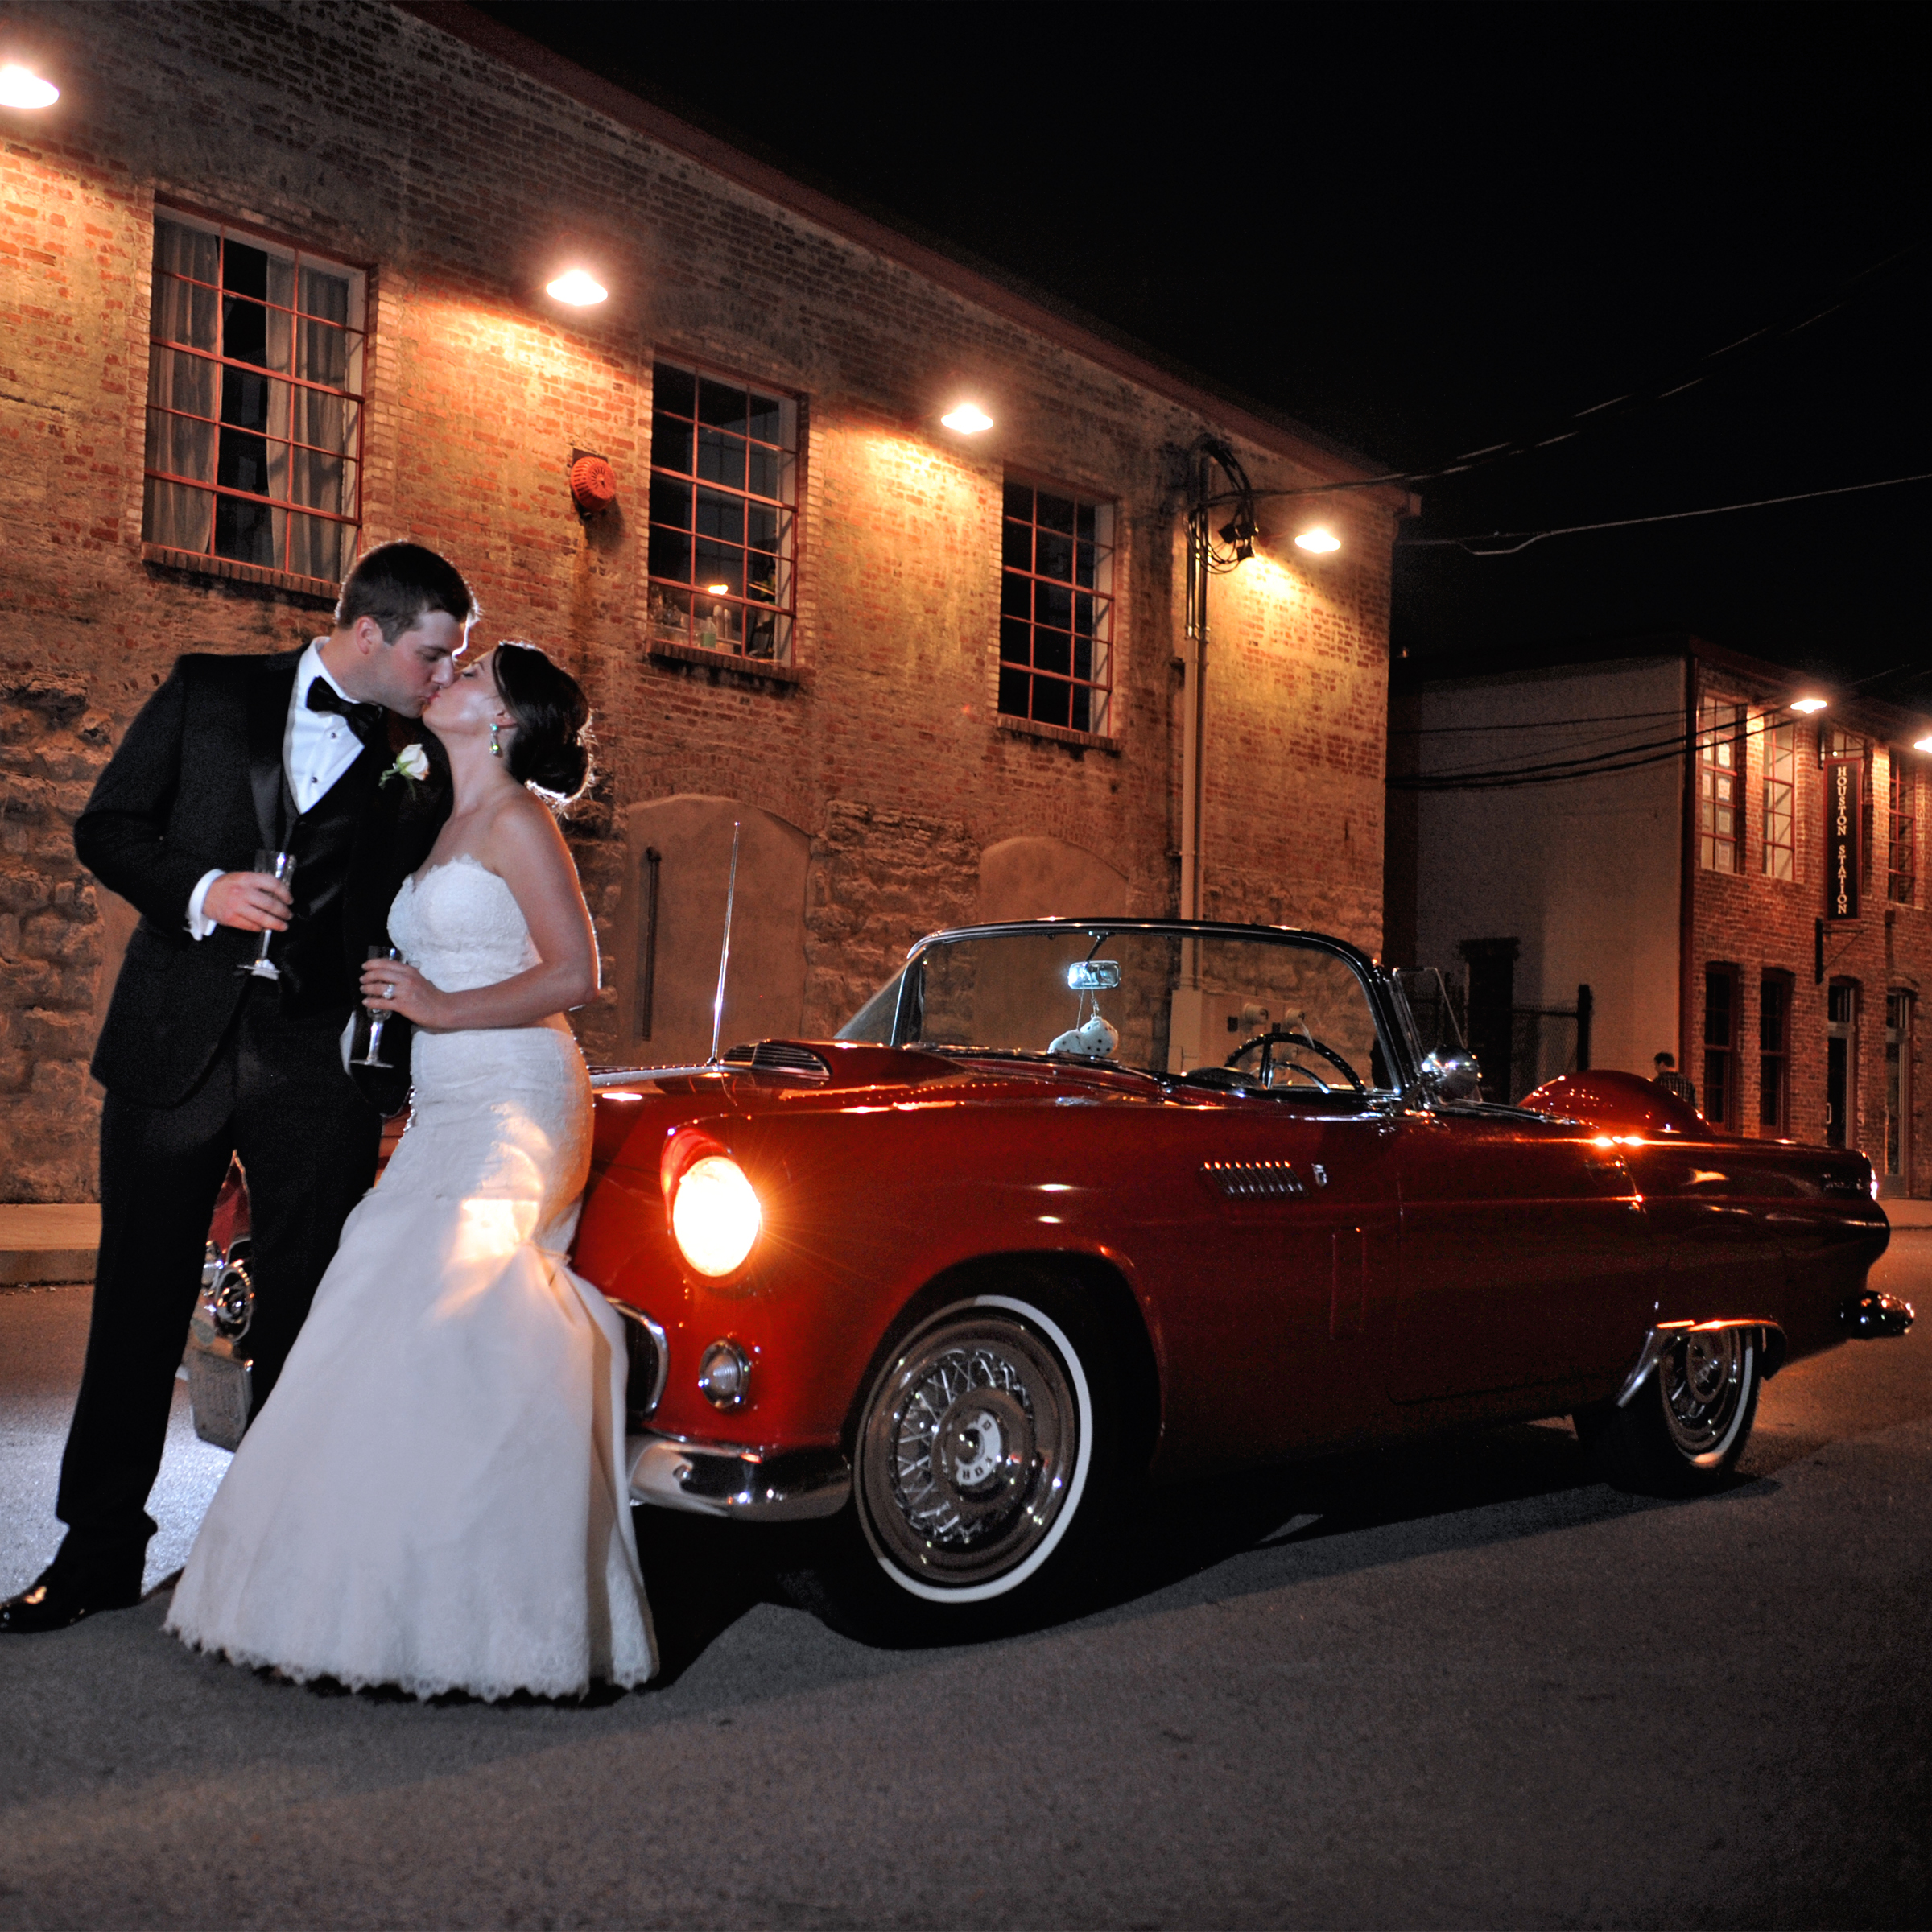 Sneak peek from Paul Wharton of Erin & Alfred's June wedding! Isn't that T-bird to die for?!